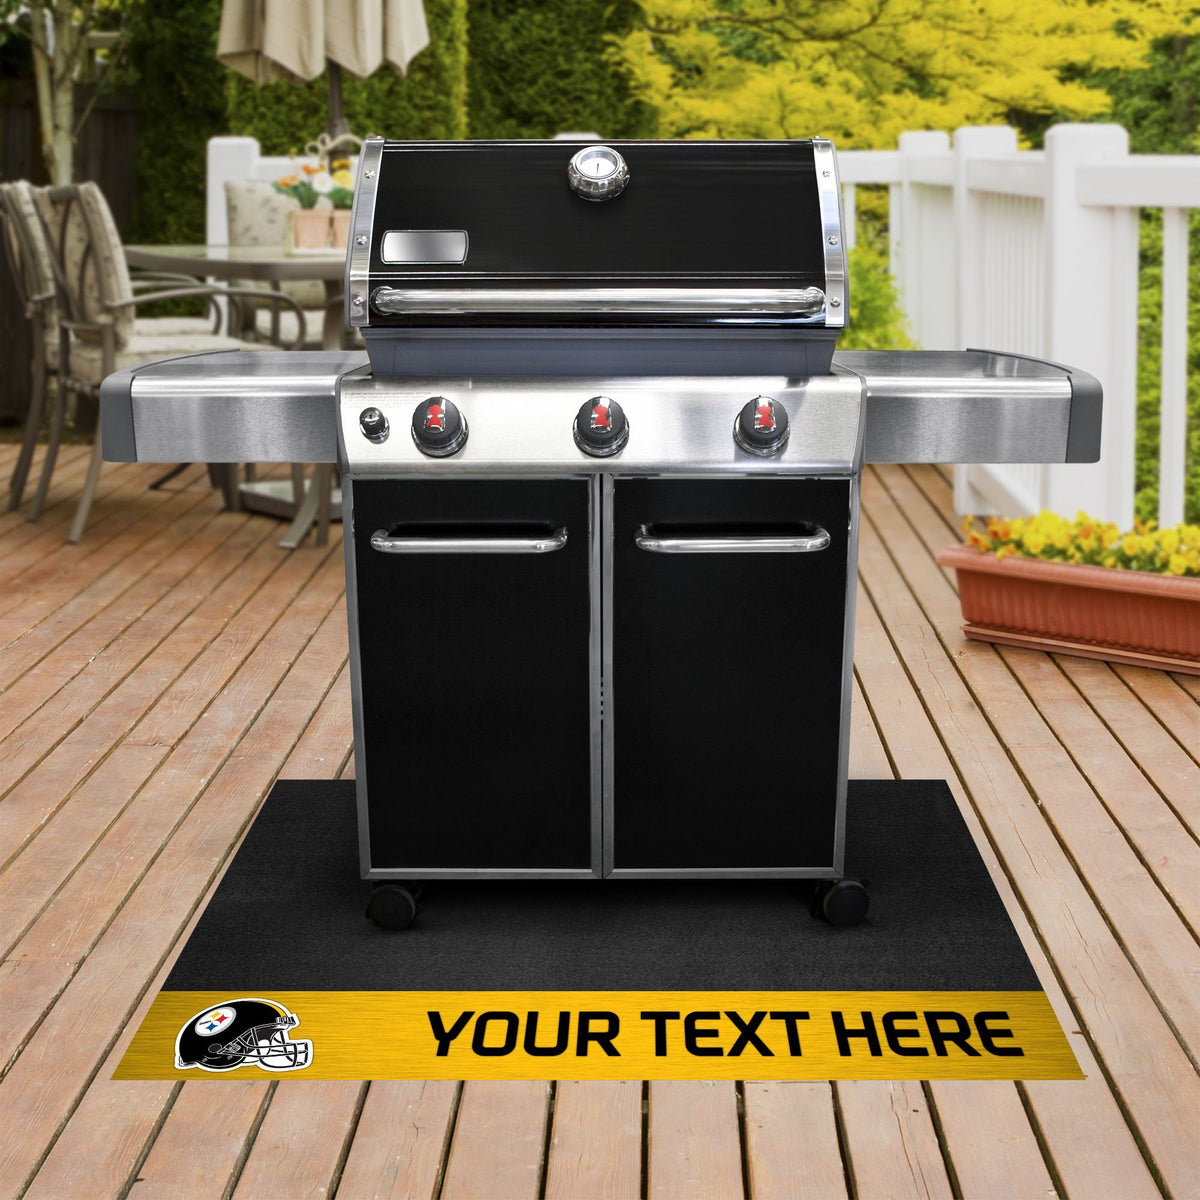 NFL Personalized Grill Mat Personalized Grill Mat Fan Mats Pittsburgh Steelers